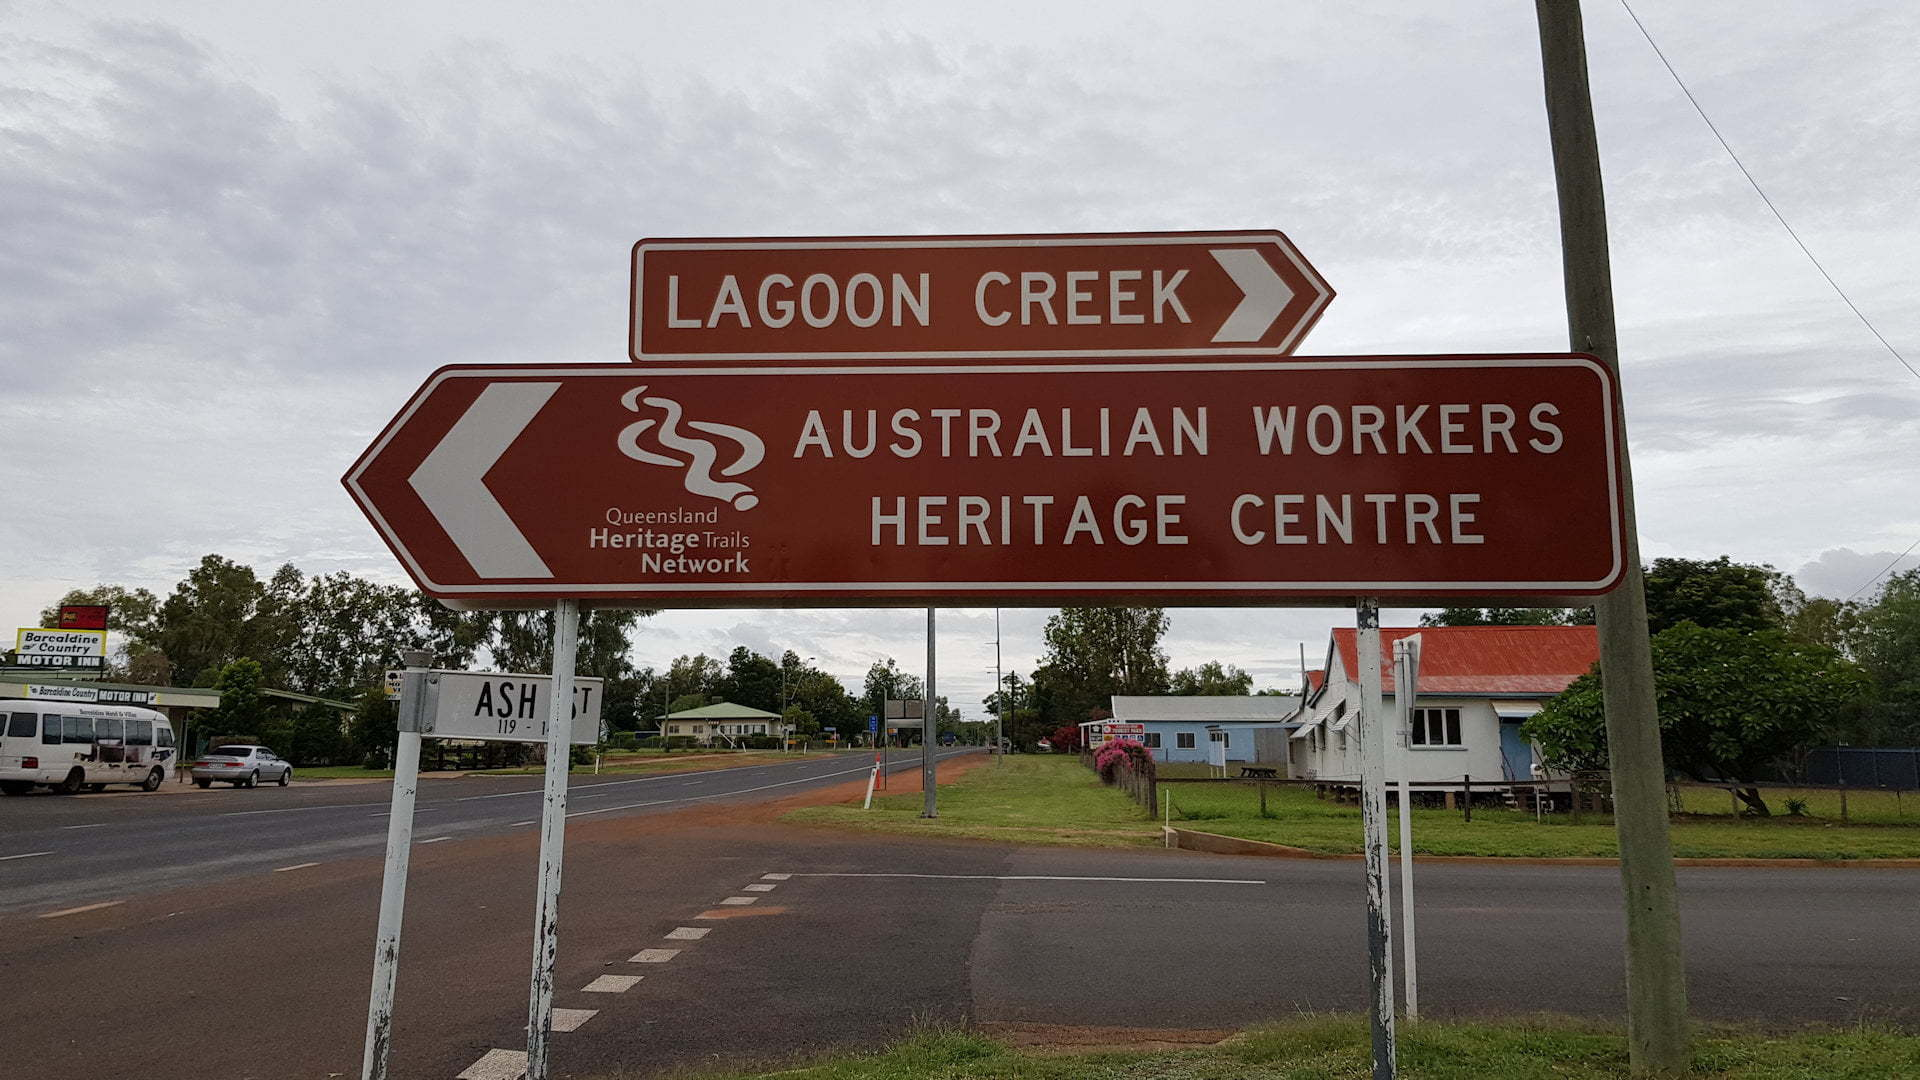 Sign for Lagoon Creek and the Australian Workers Heritage Centre